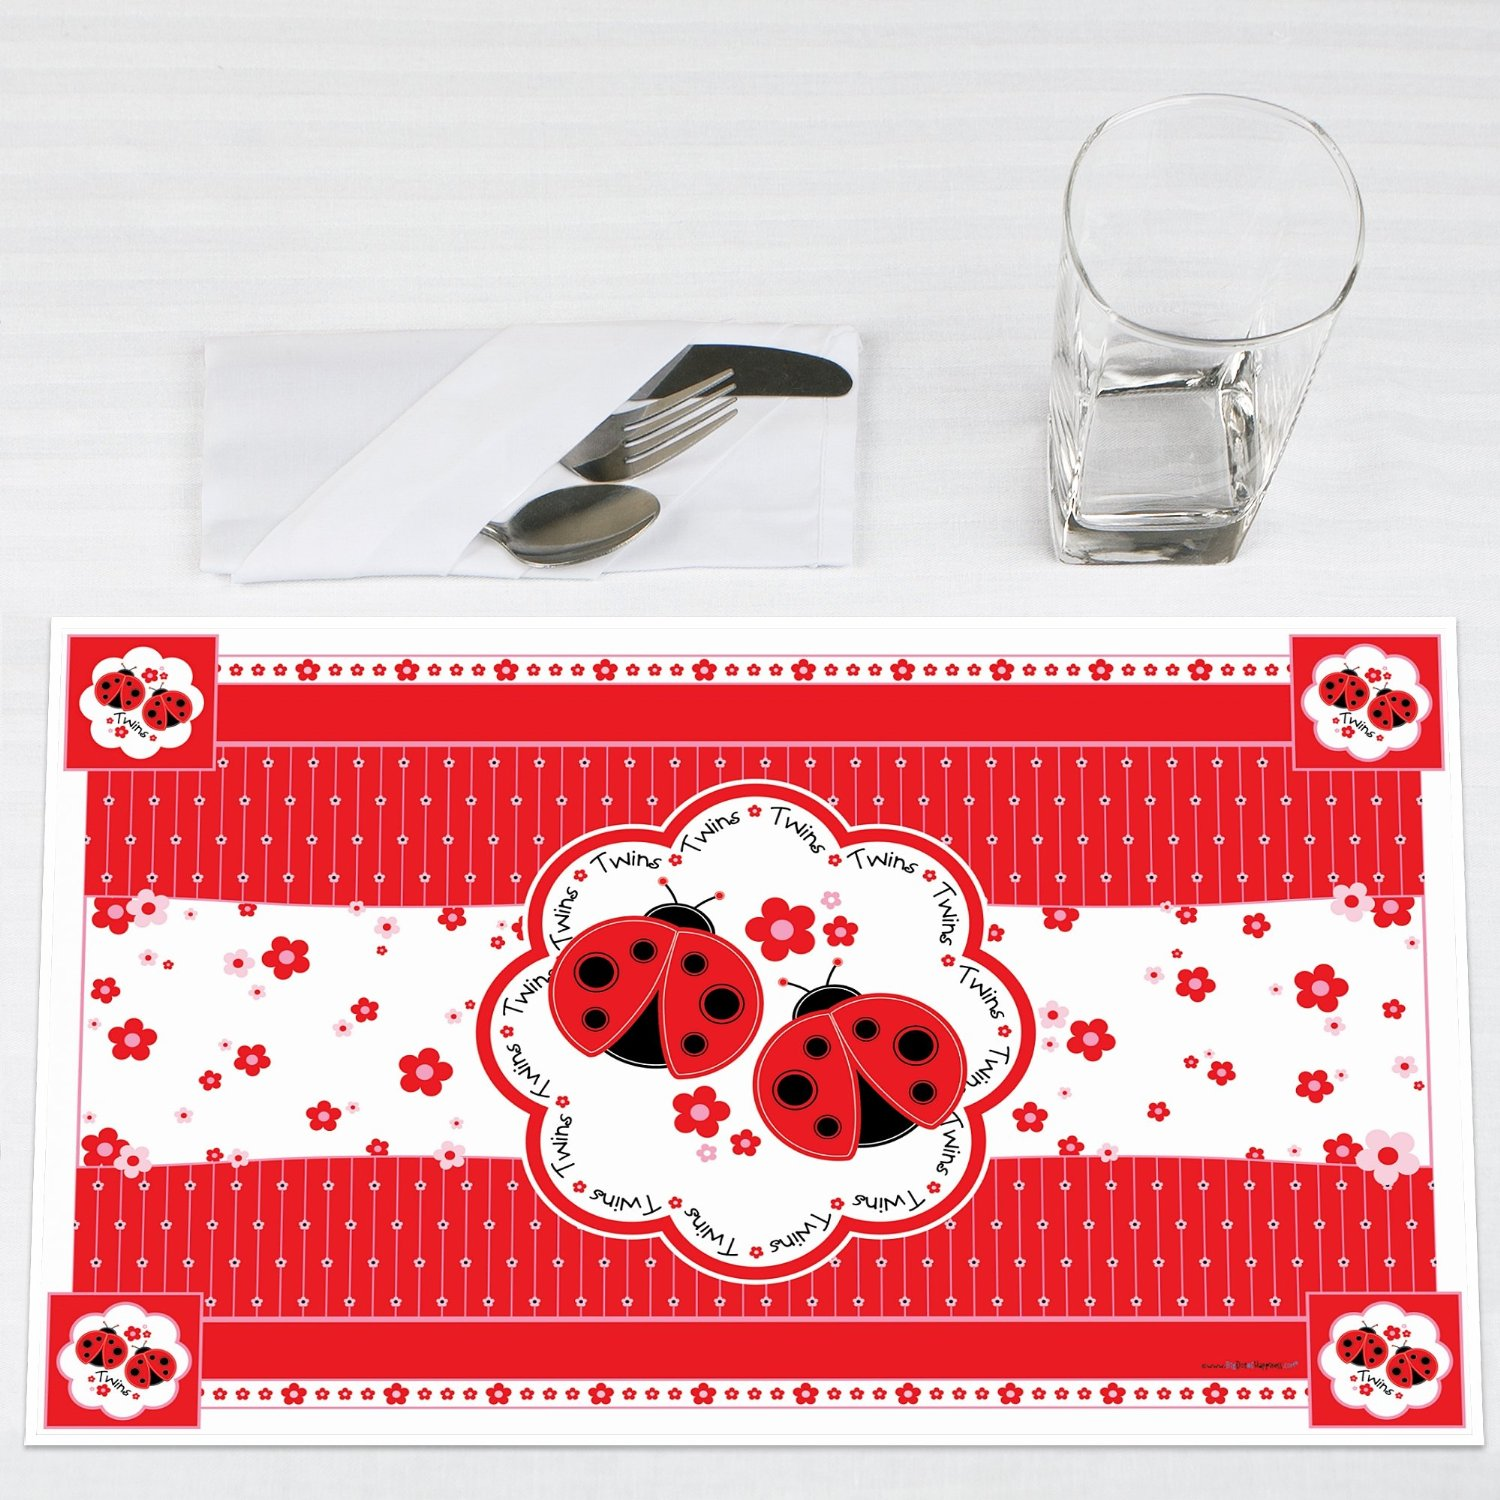 Twin Modern Ladybugs Party Placemats Set of 12 by Big Dot of Happiness, LLC